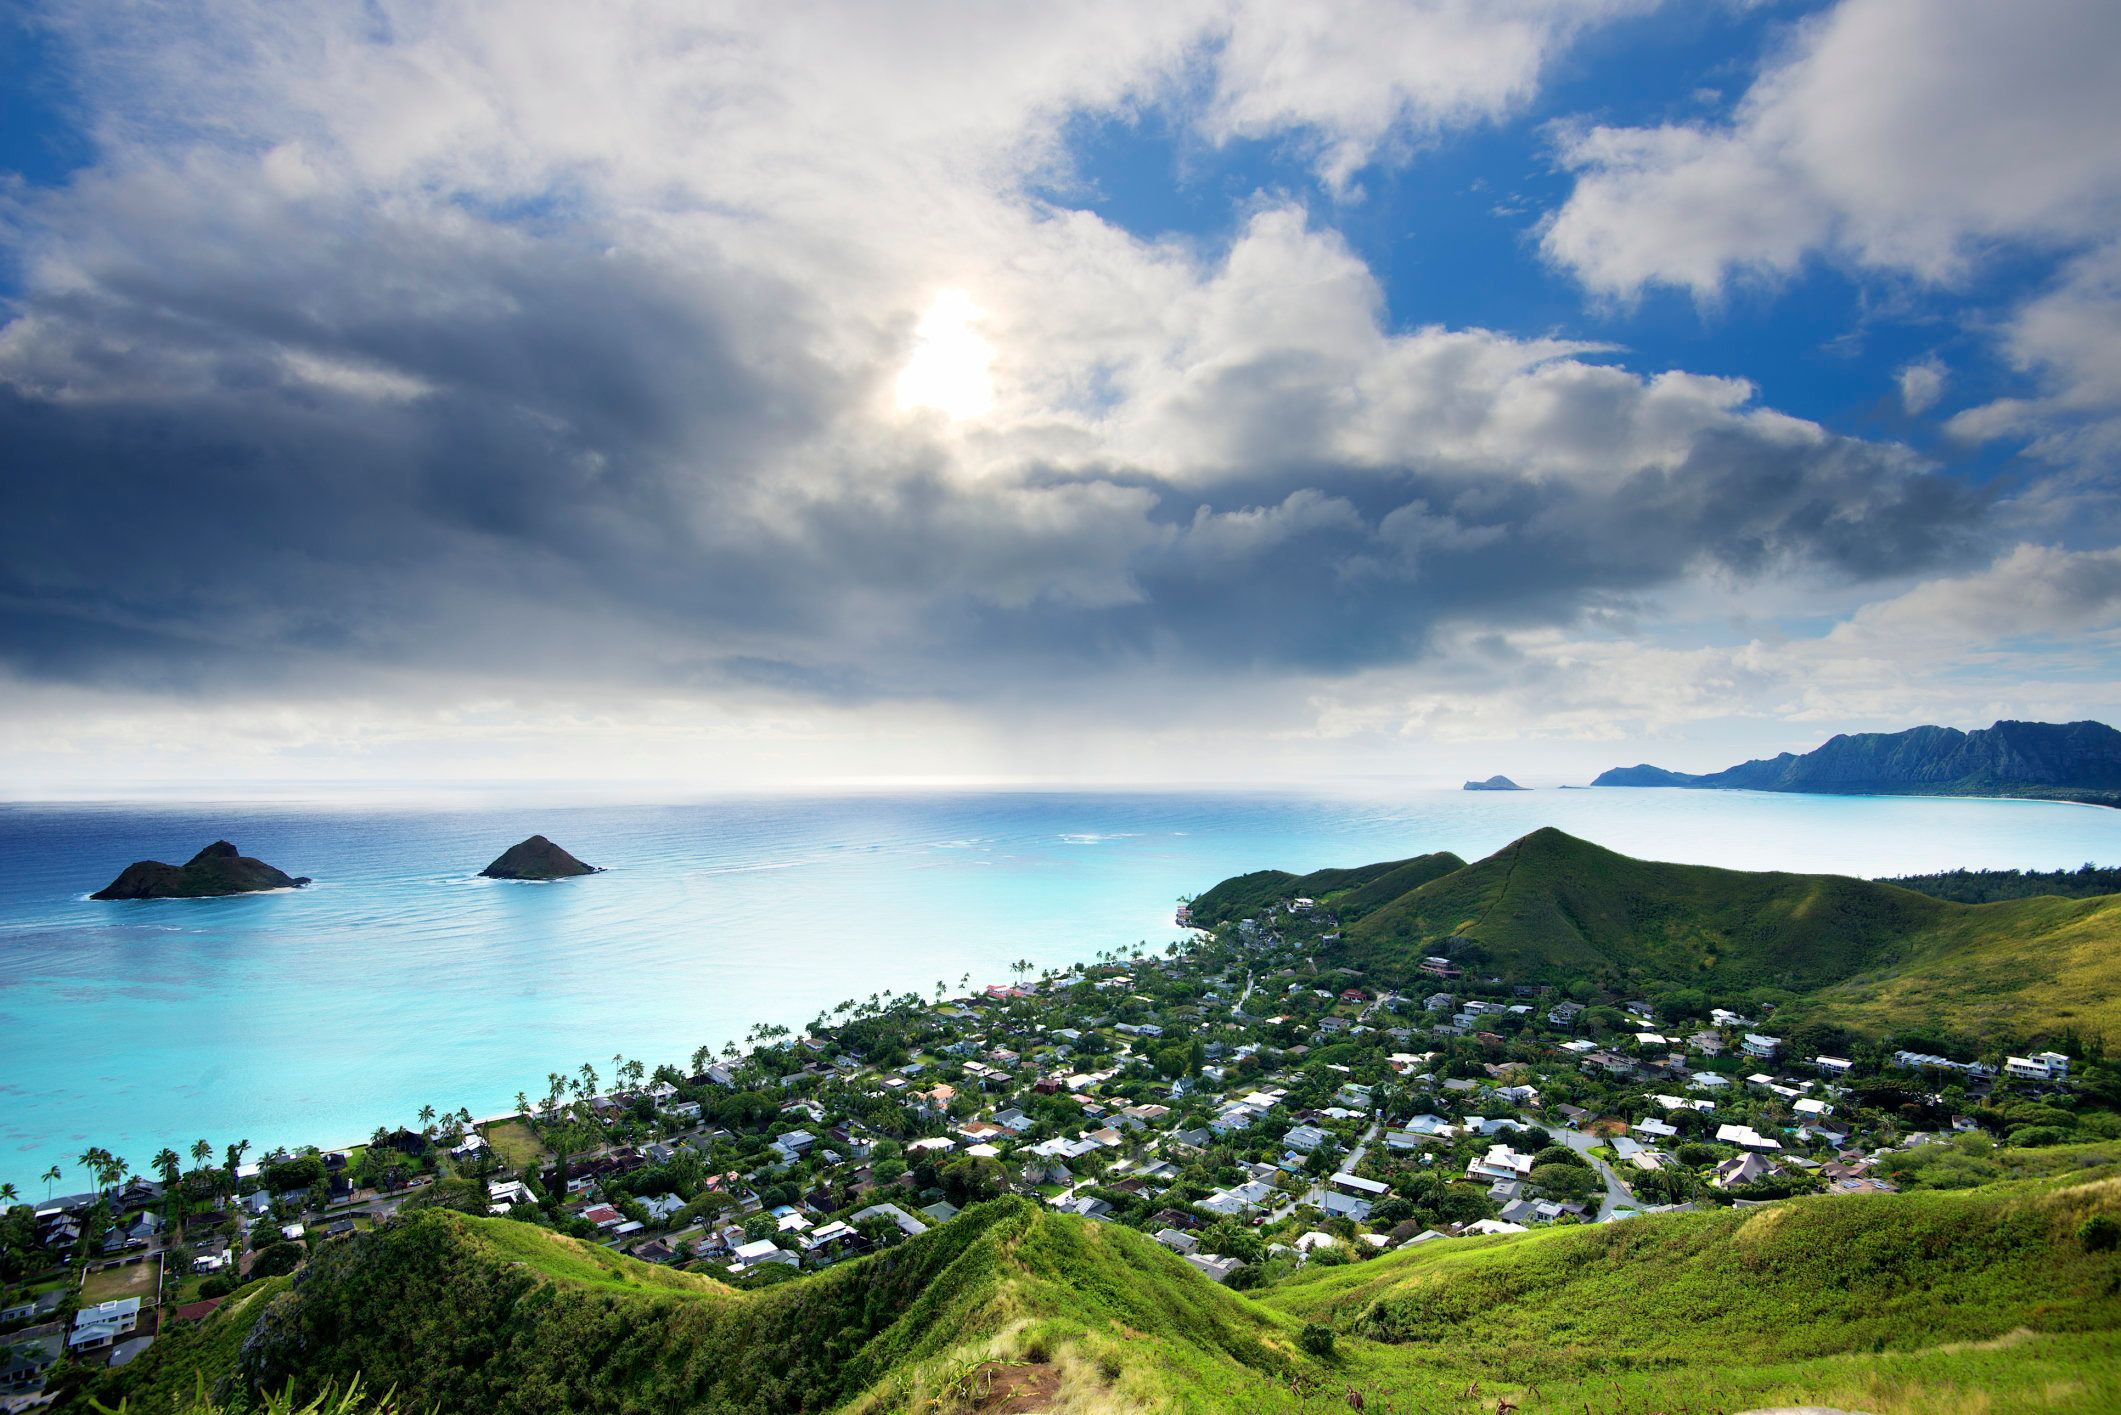 The Mokulua Islands sit off the coast of Lanikai Beach, but the best way to see them is from theold bunkers atop one of